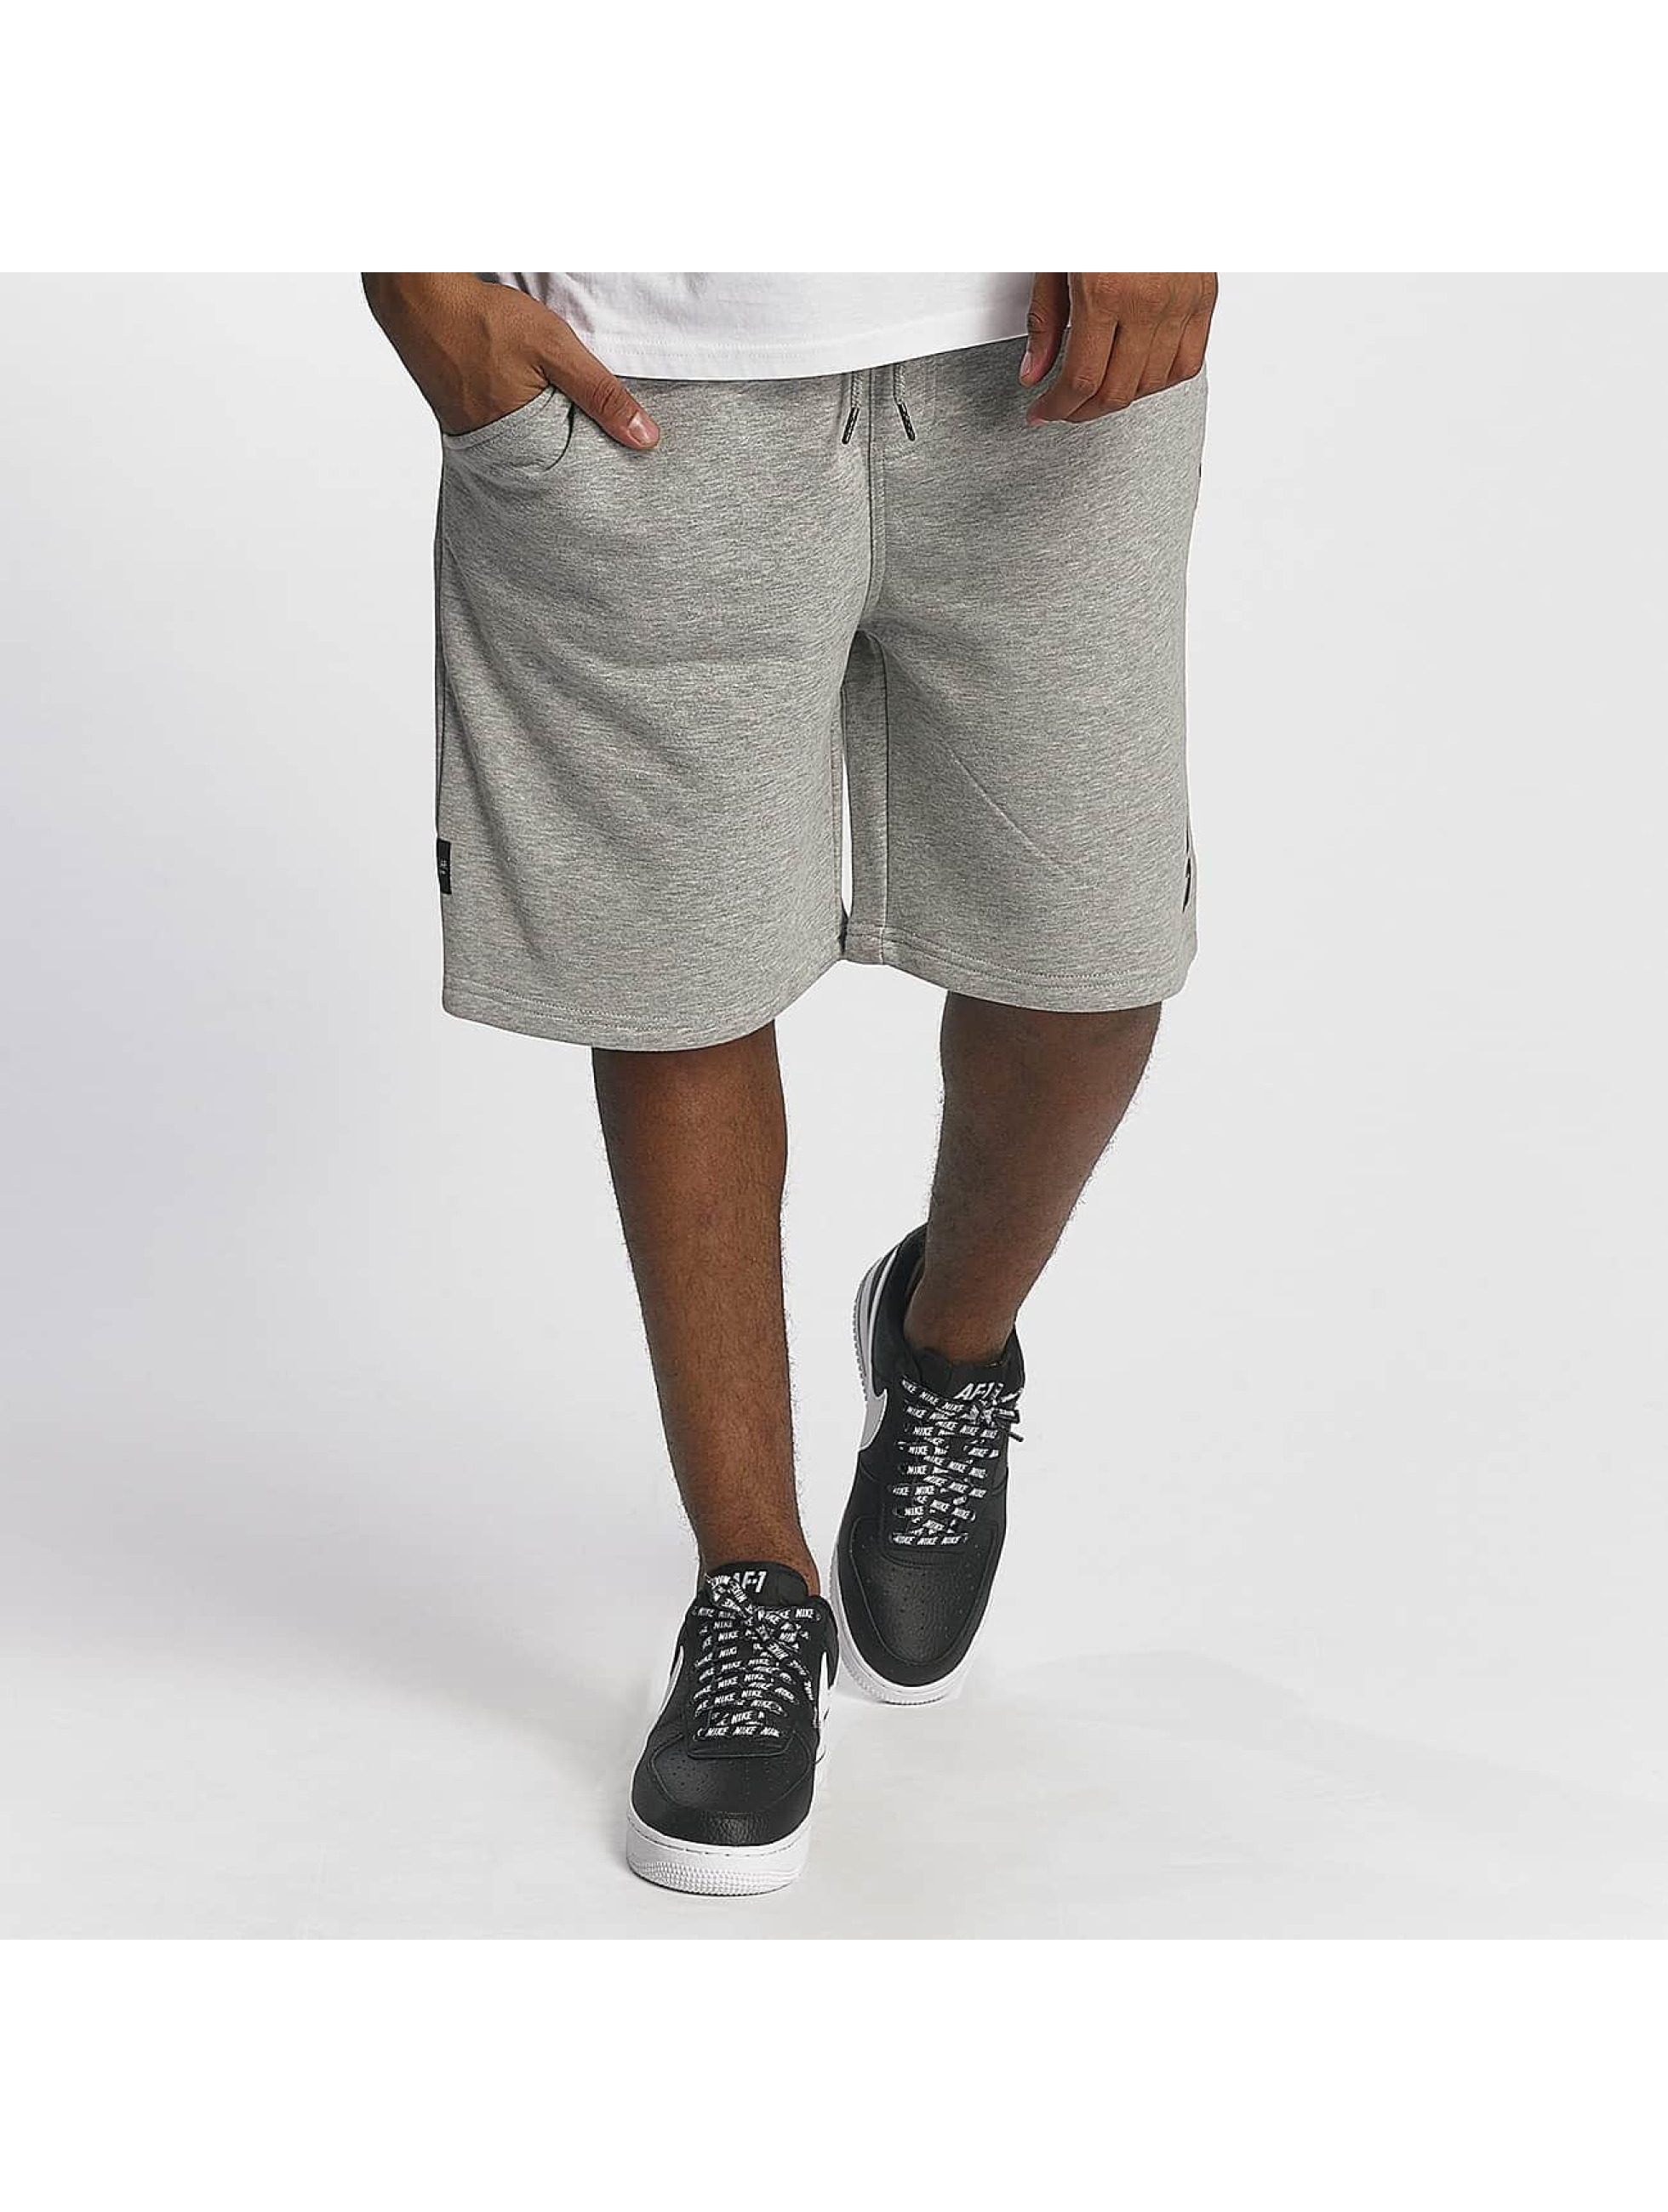 Rocawear / Short Basic in grey S